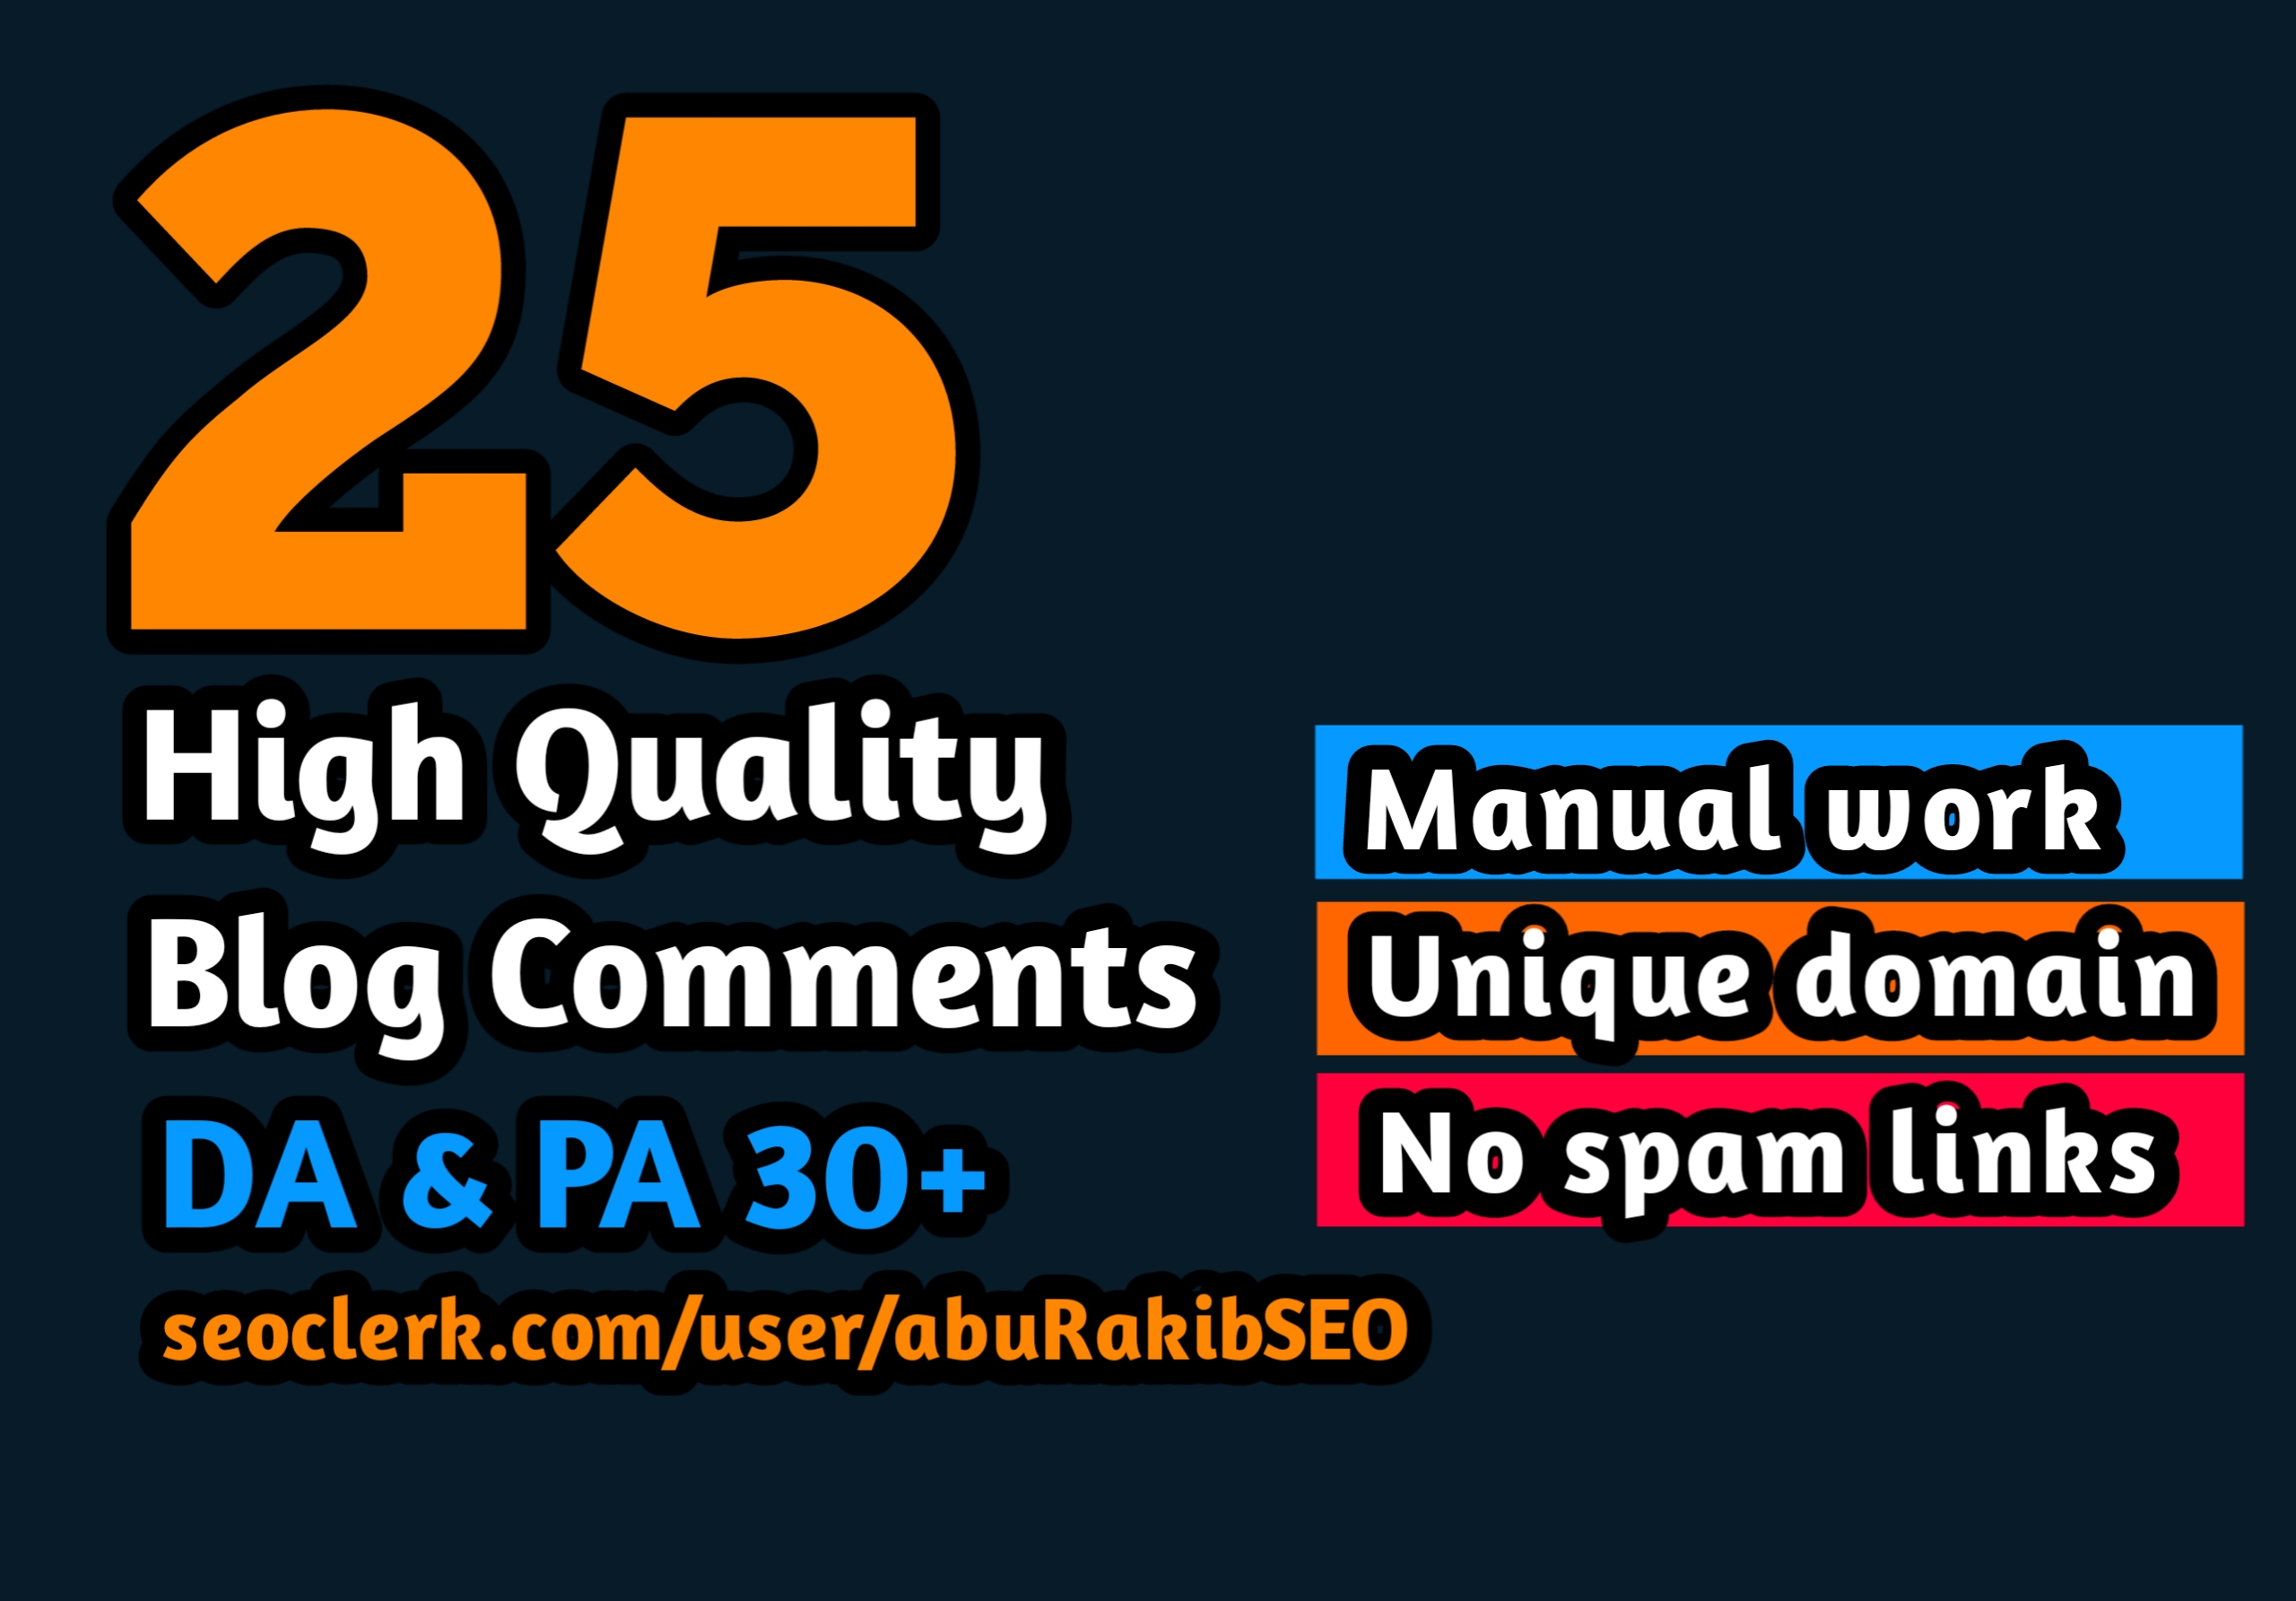 Manually create 25 High Quality Blog Comments